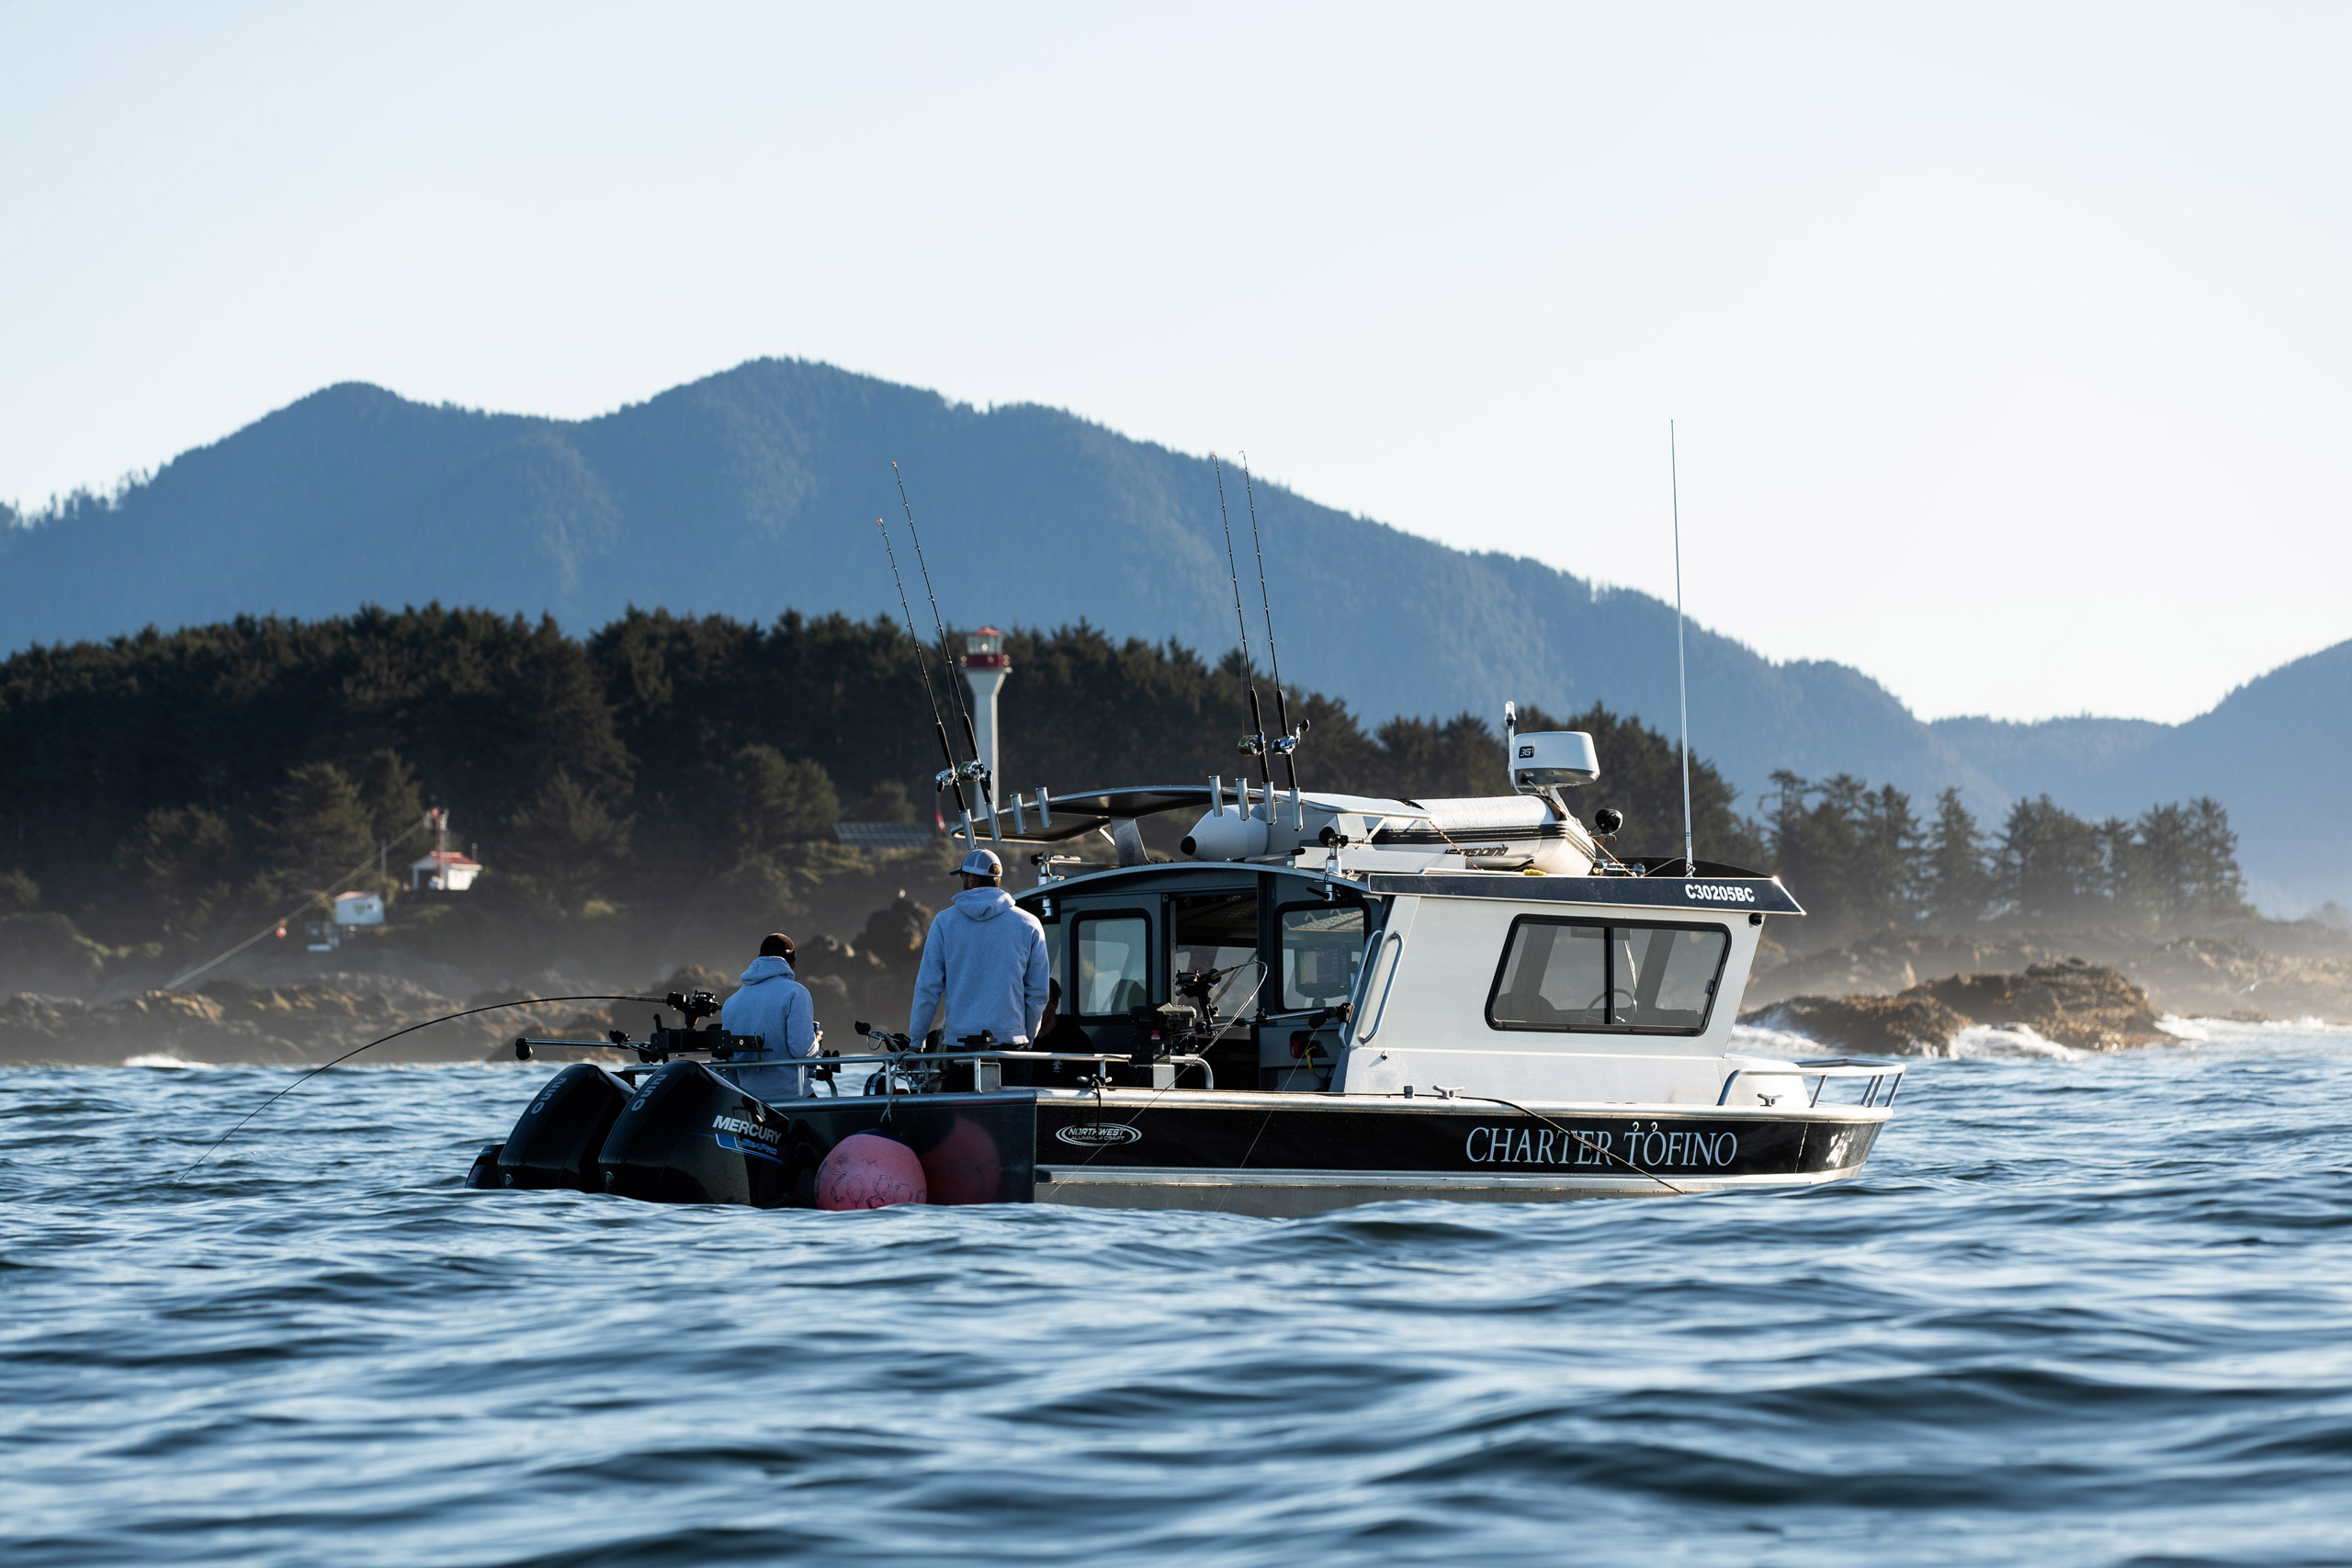 Charter Tofino's Sea-Wolf fishing vessel looking for Tuna, Halibut & Salmon. Exciting new rates are available for the 2021 fishing season!